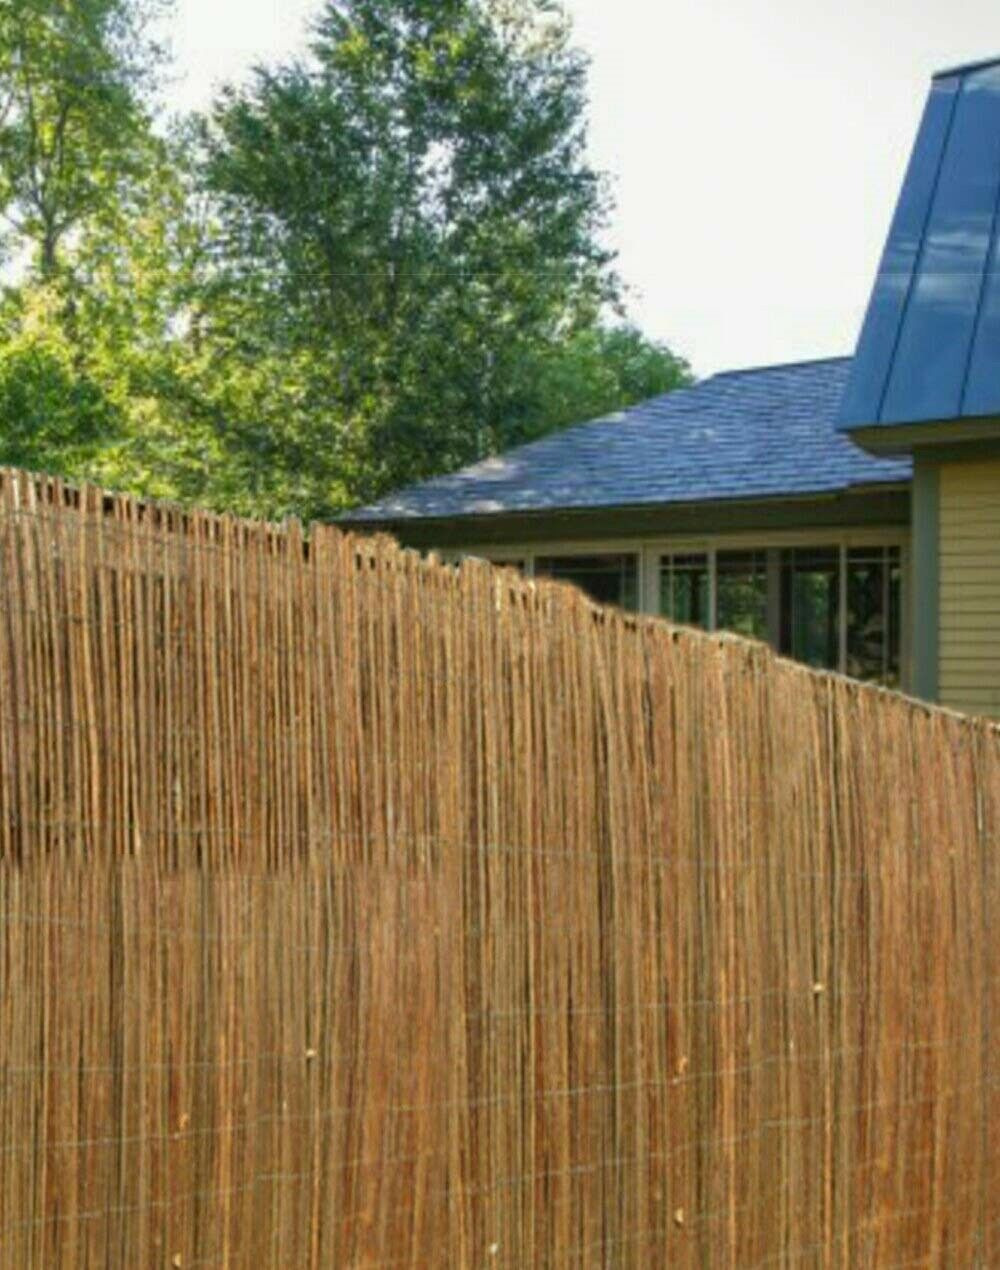 Modified Panel Fence Elegant 4m Natural Peeled Reed Screening Roll Garden Screen Fence Fencing Panel 1x 4m 1